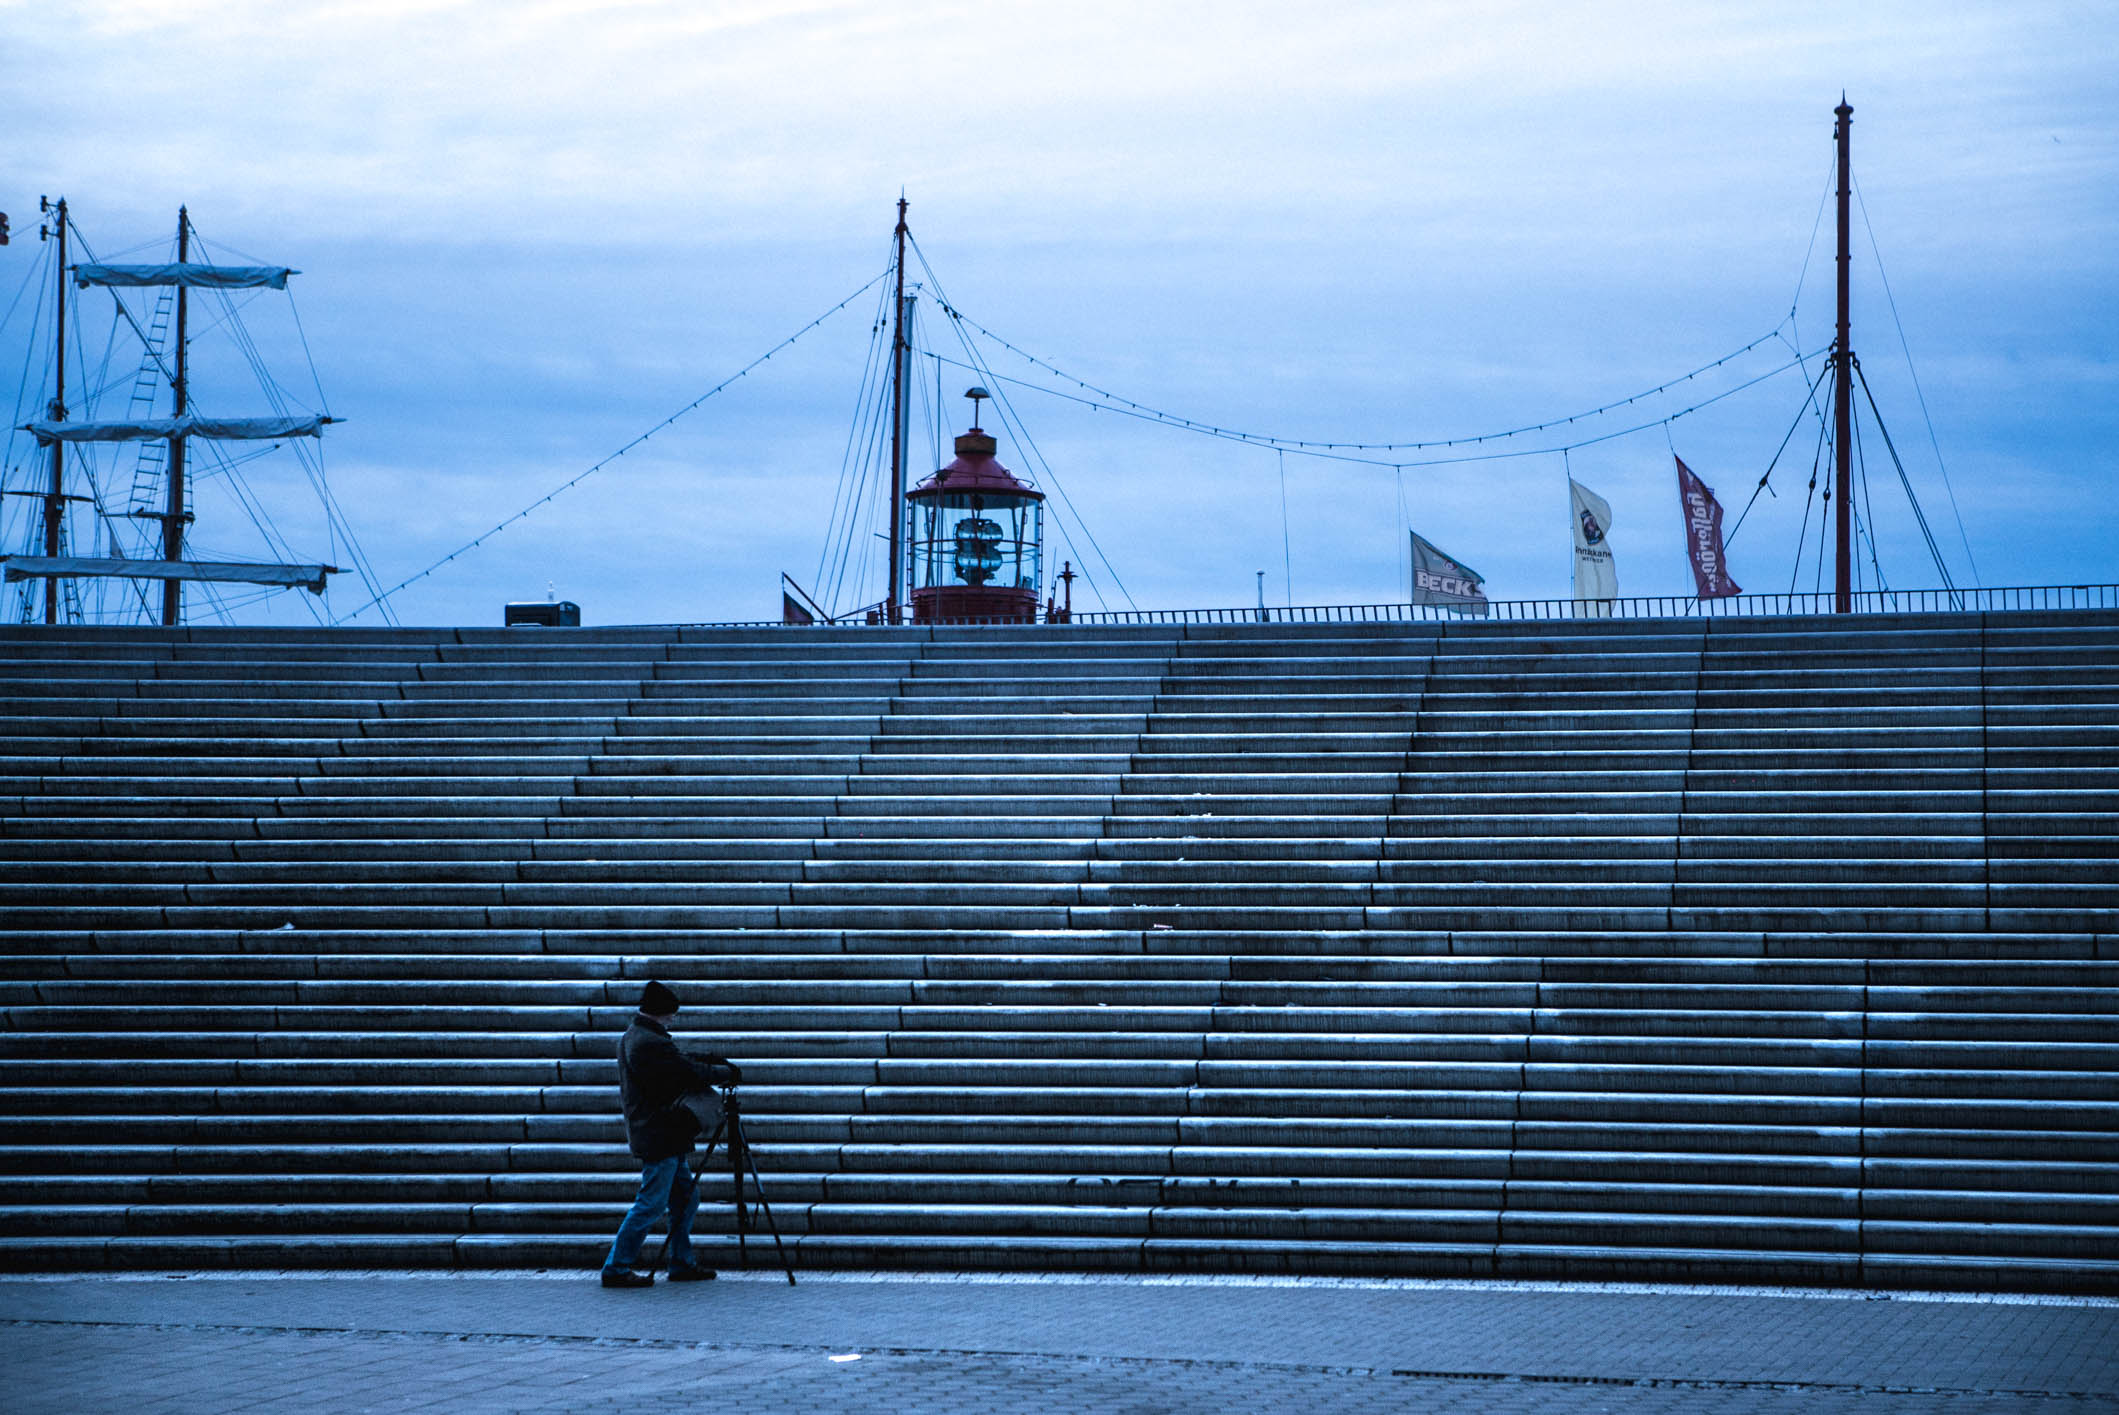 Photo by Pascal Sommer - On the Elbpromenade. Not strictly HafenCity, but I don't care.